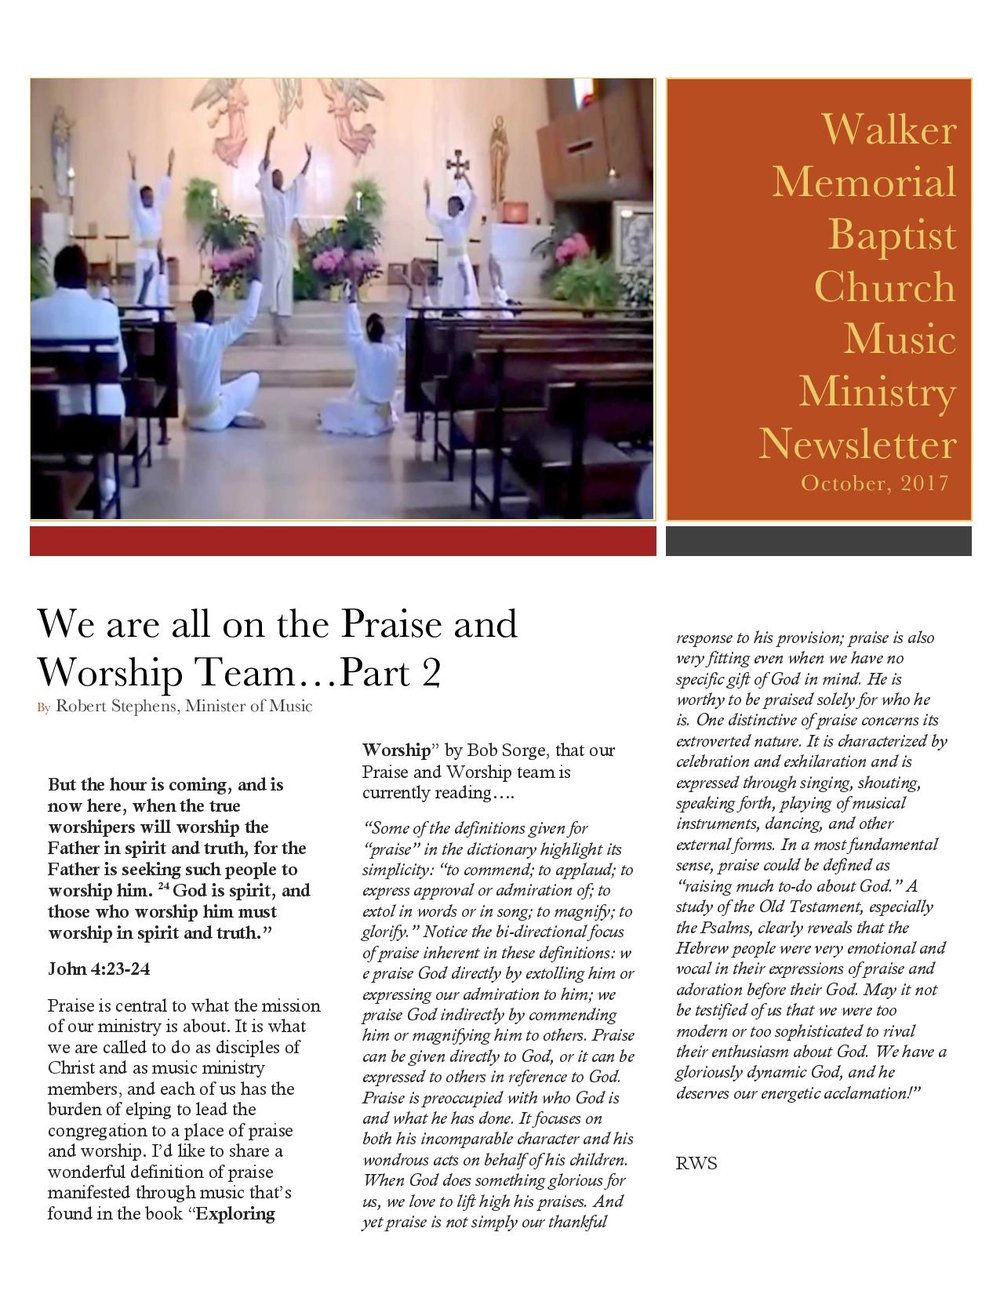 WMBC Music Ministry Newsletter October 2017  (Autosaved)-page-001.jpg